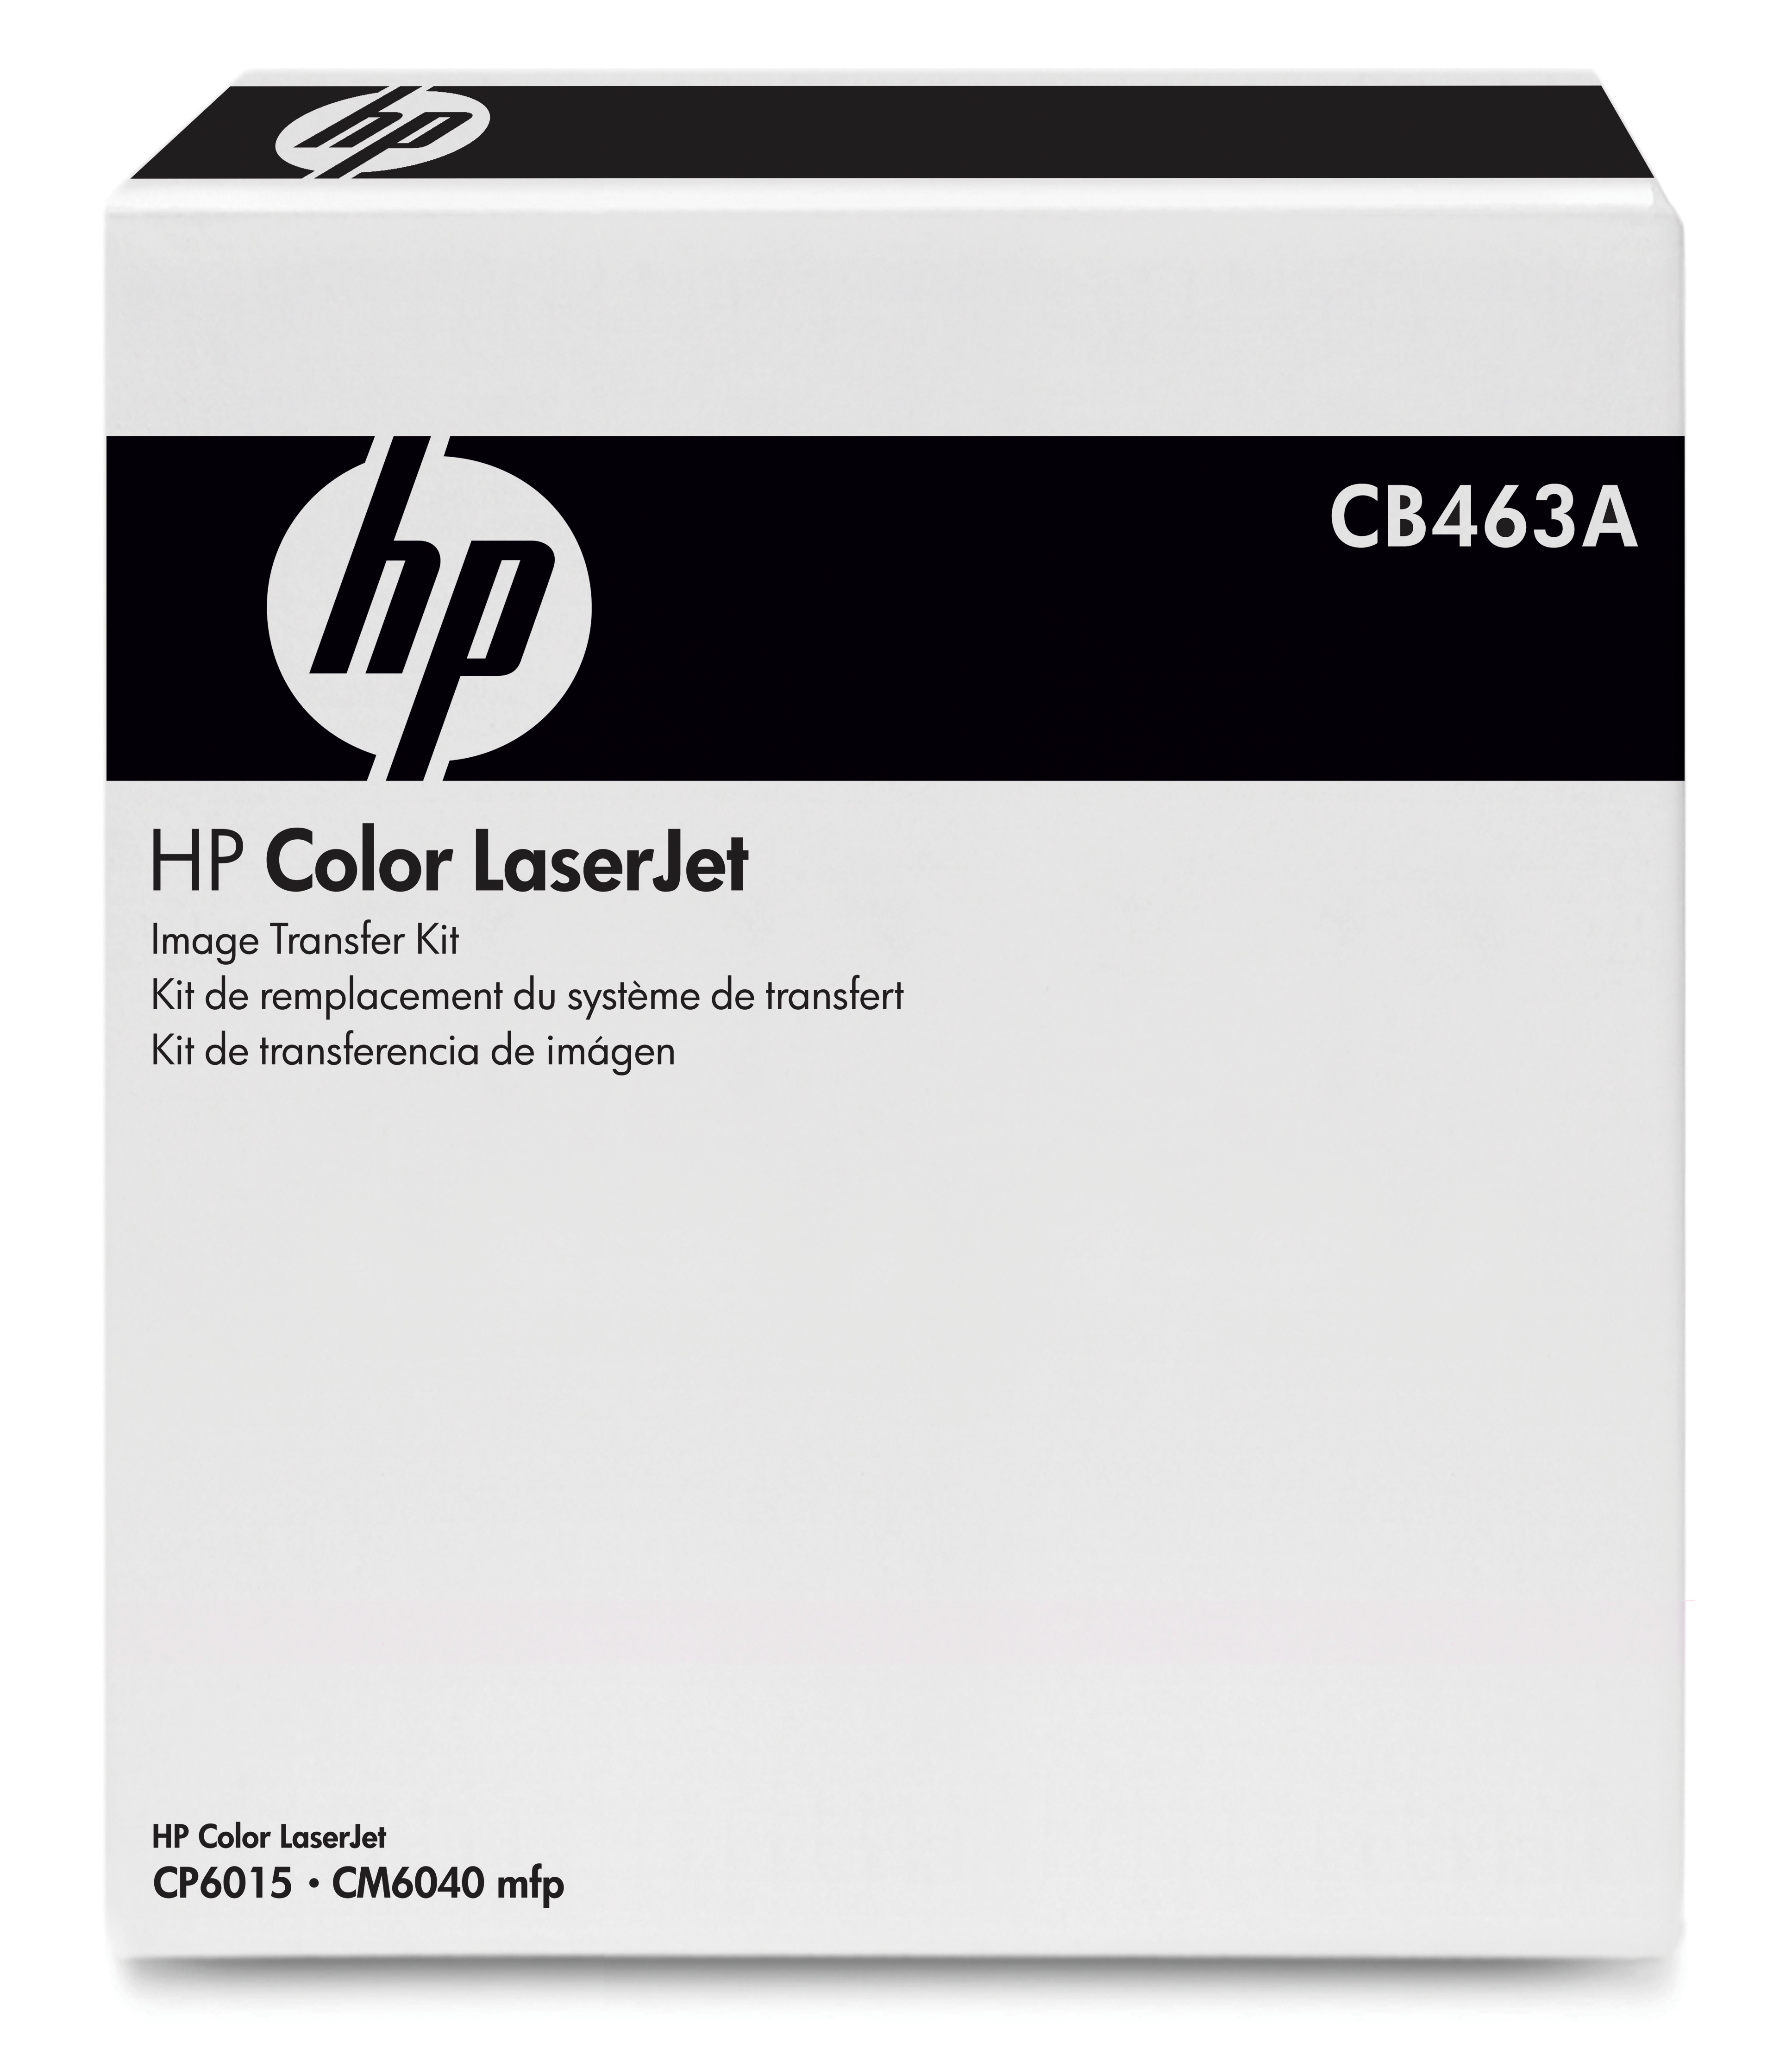 HP 824A Color Image Transfer Kit CB463A